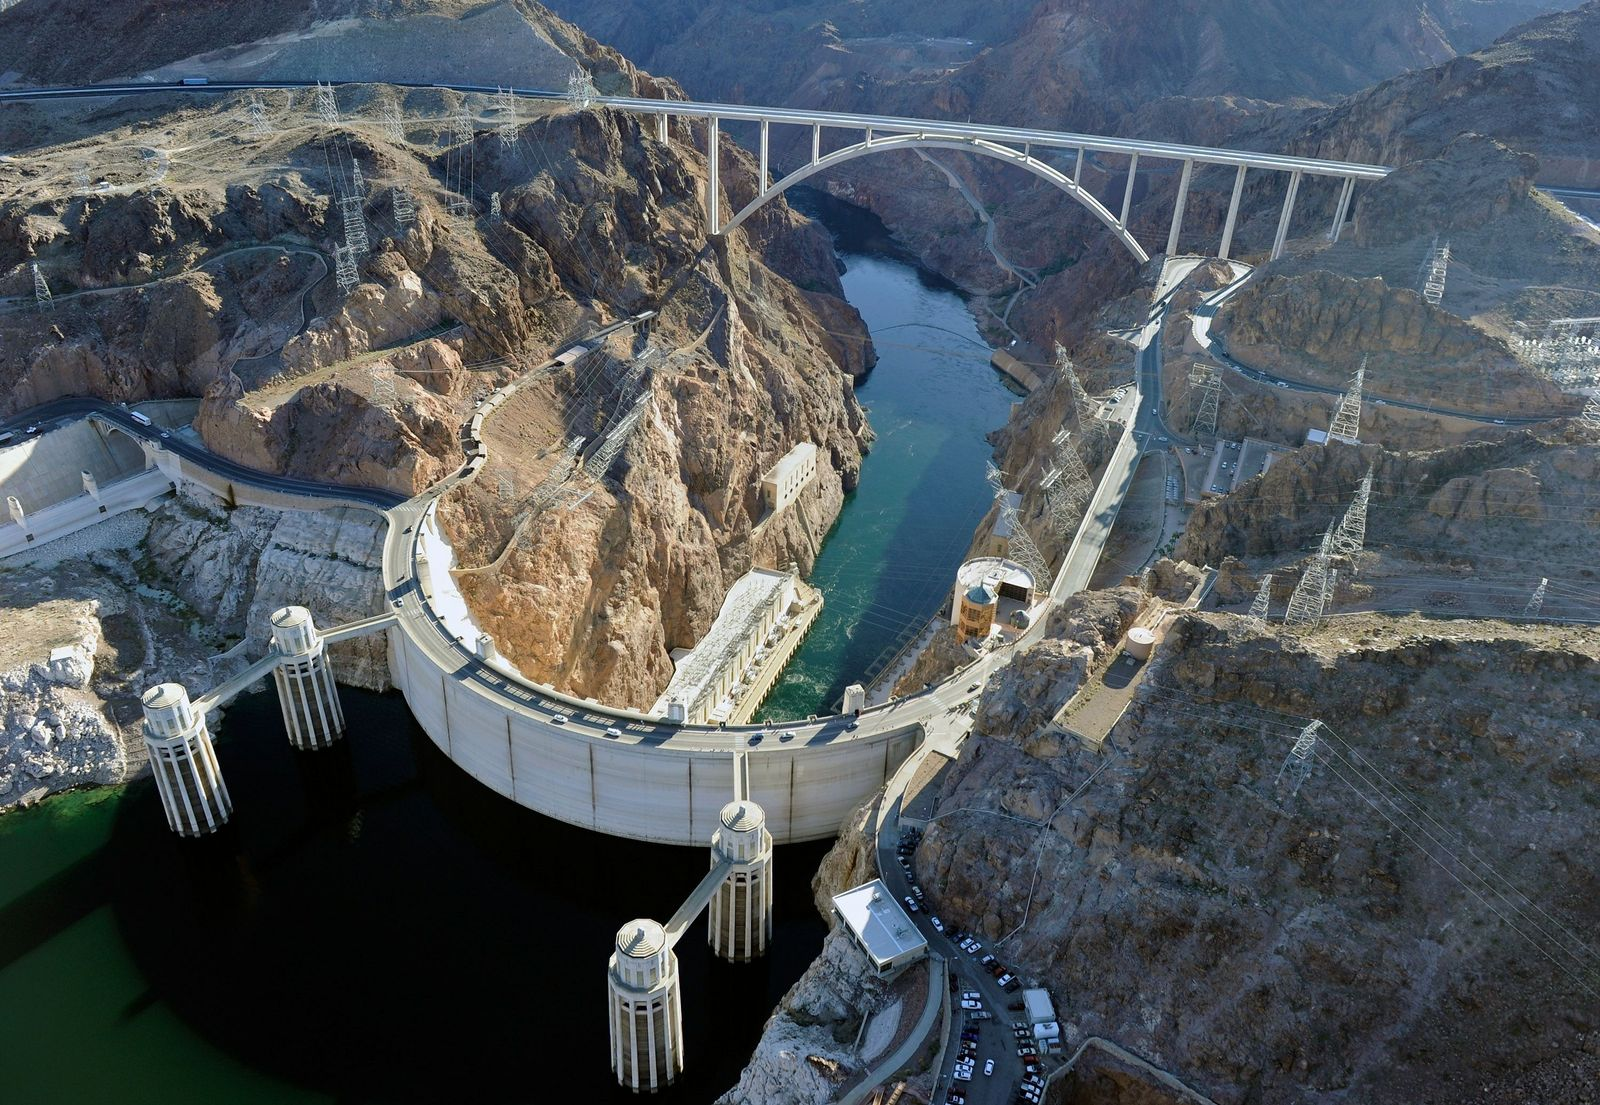 Hoover Dam / Stausee